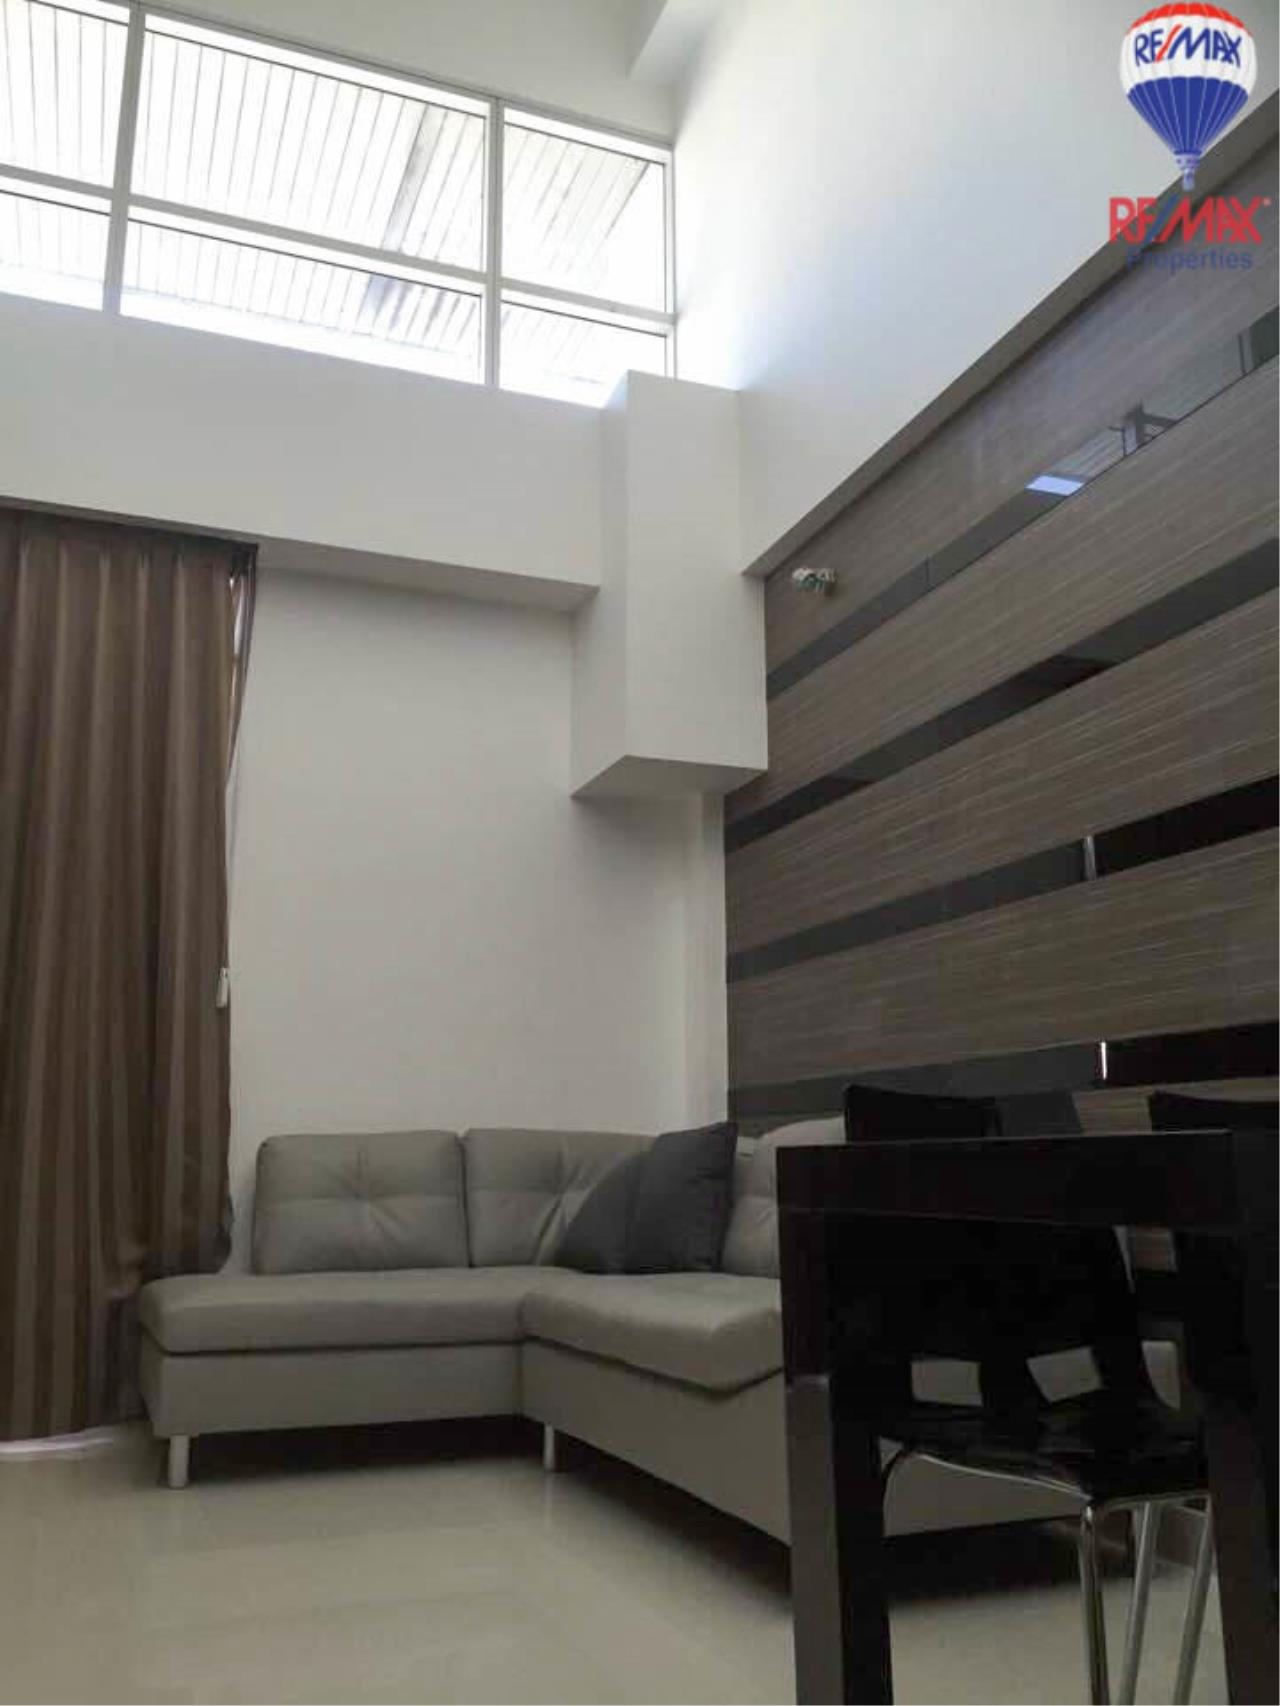 RE/MAX Properties Agency's 2 Bedrooms Duplex style for rent at The Trendy condo 3